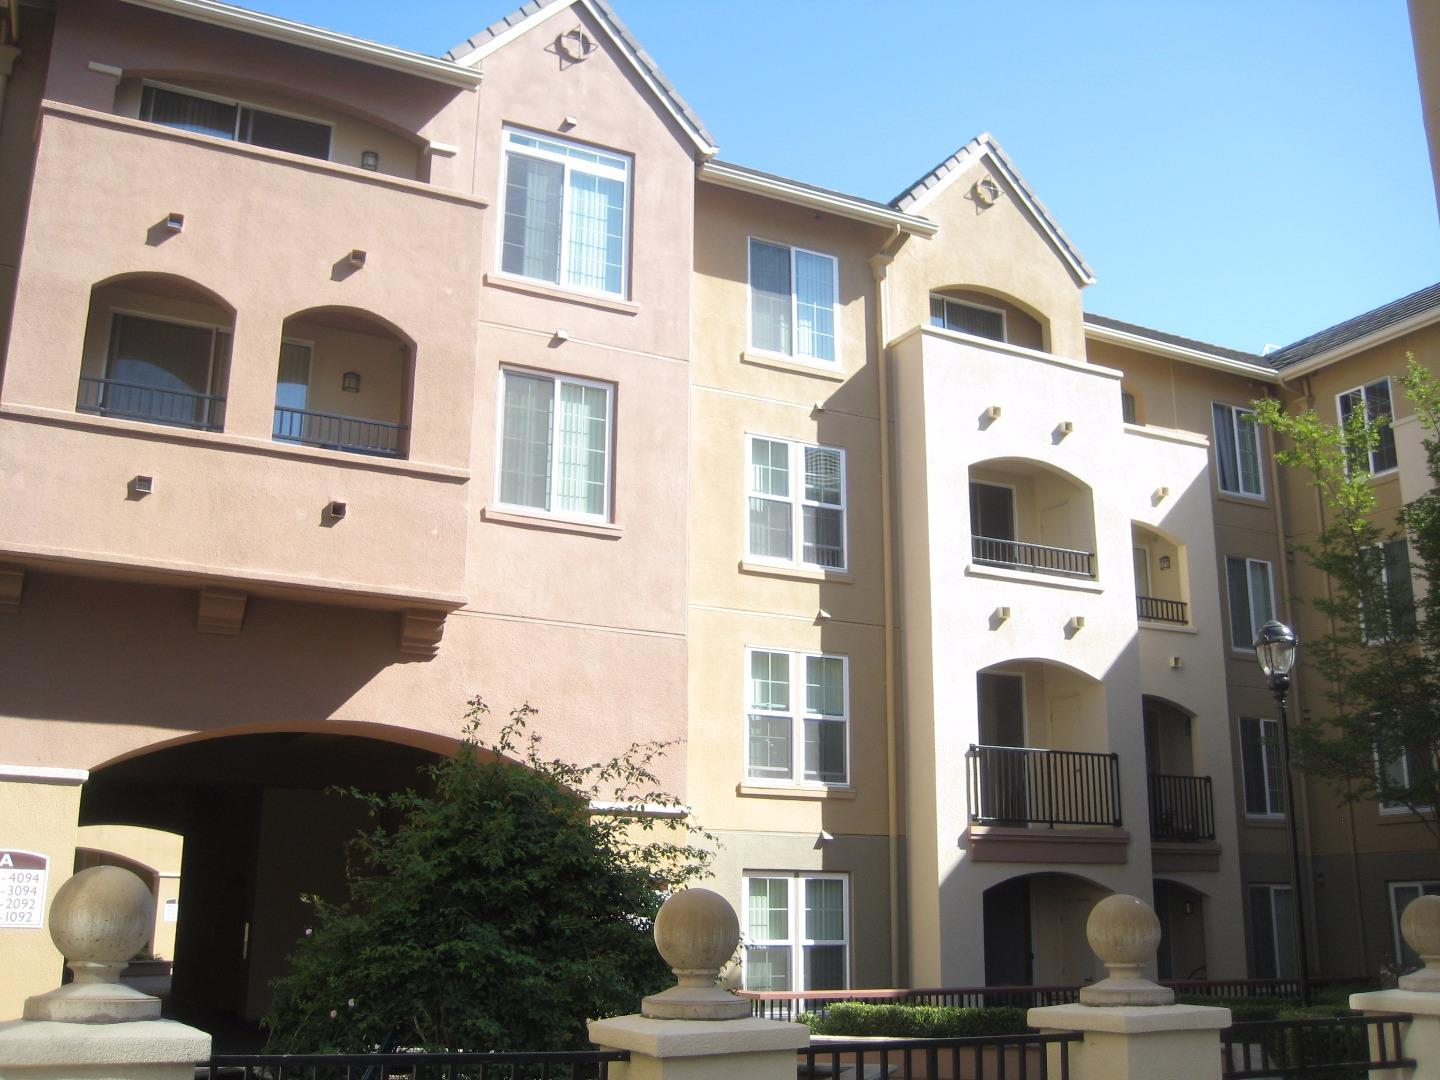 Additional photo for property listing at 1550 Technology Drive  San Jose, California 95110 United States